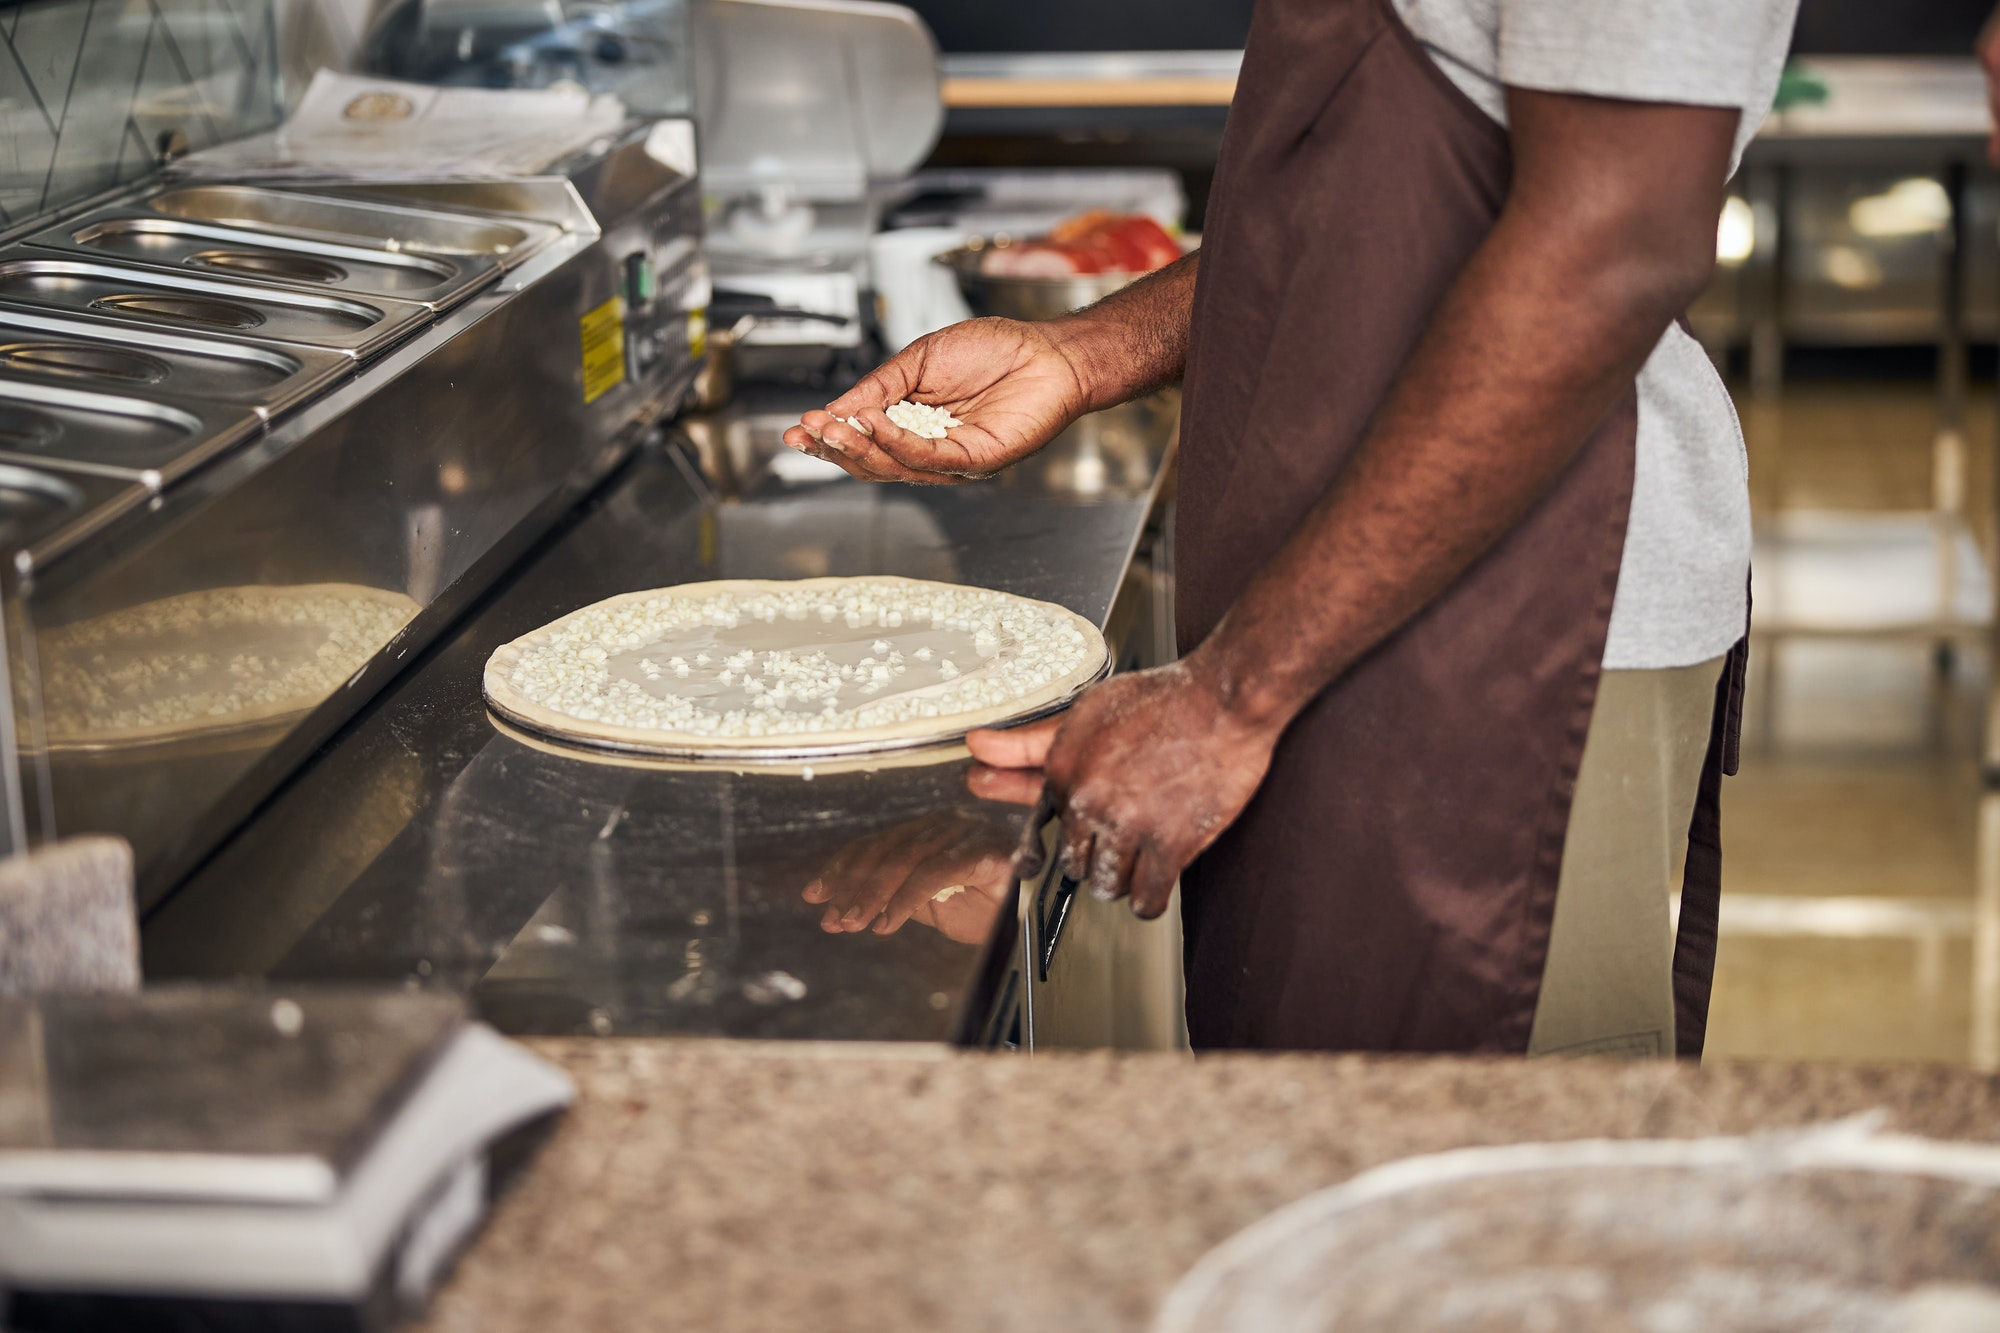 Afro American man cooking pizza in restaurant